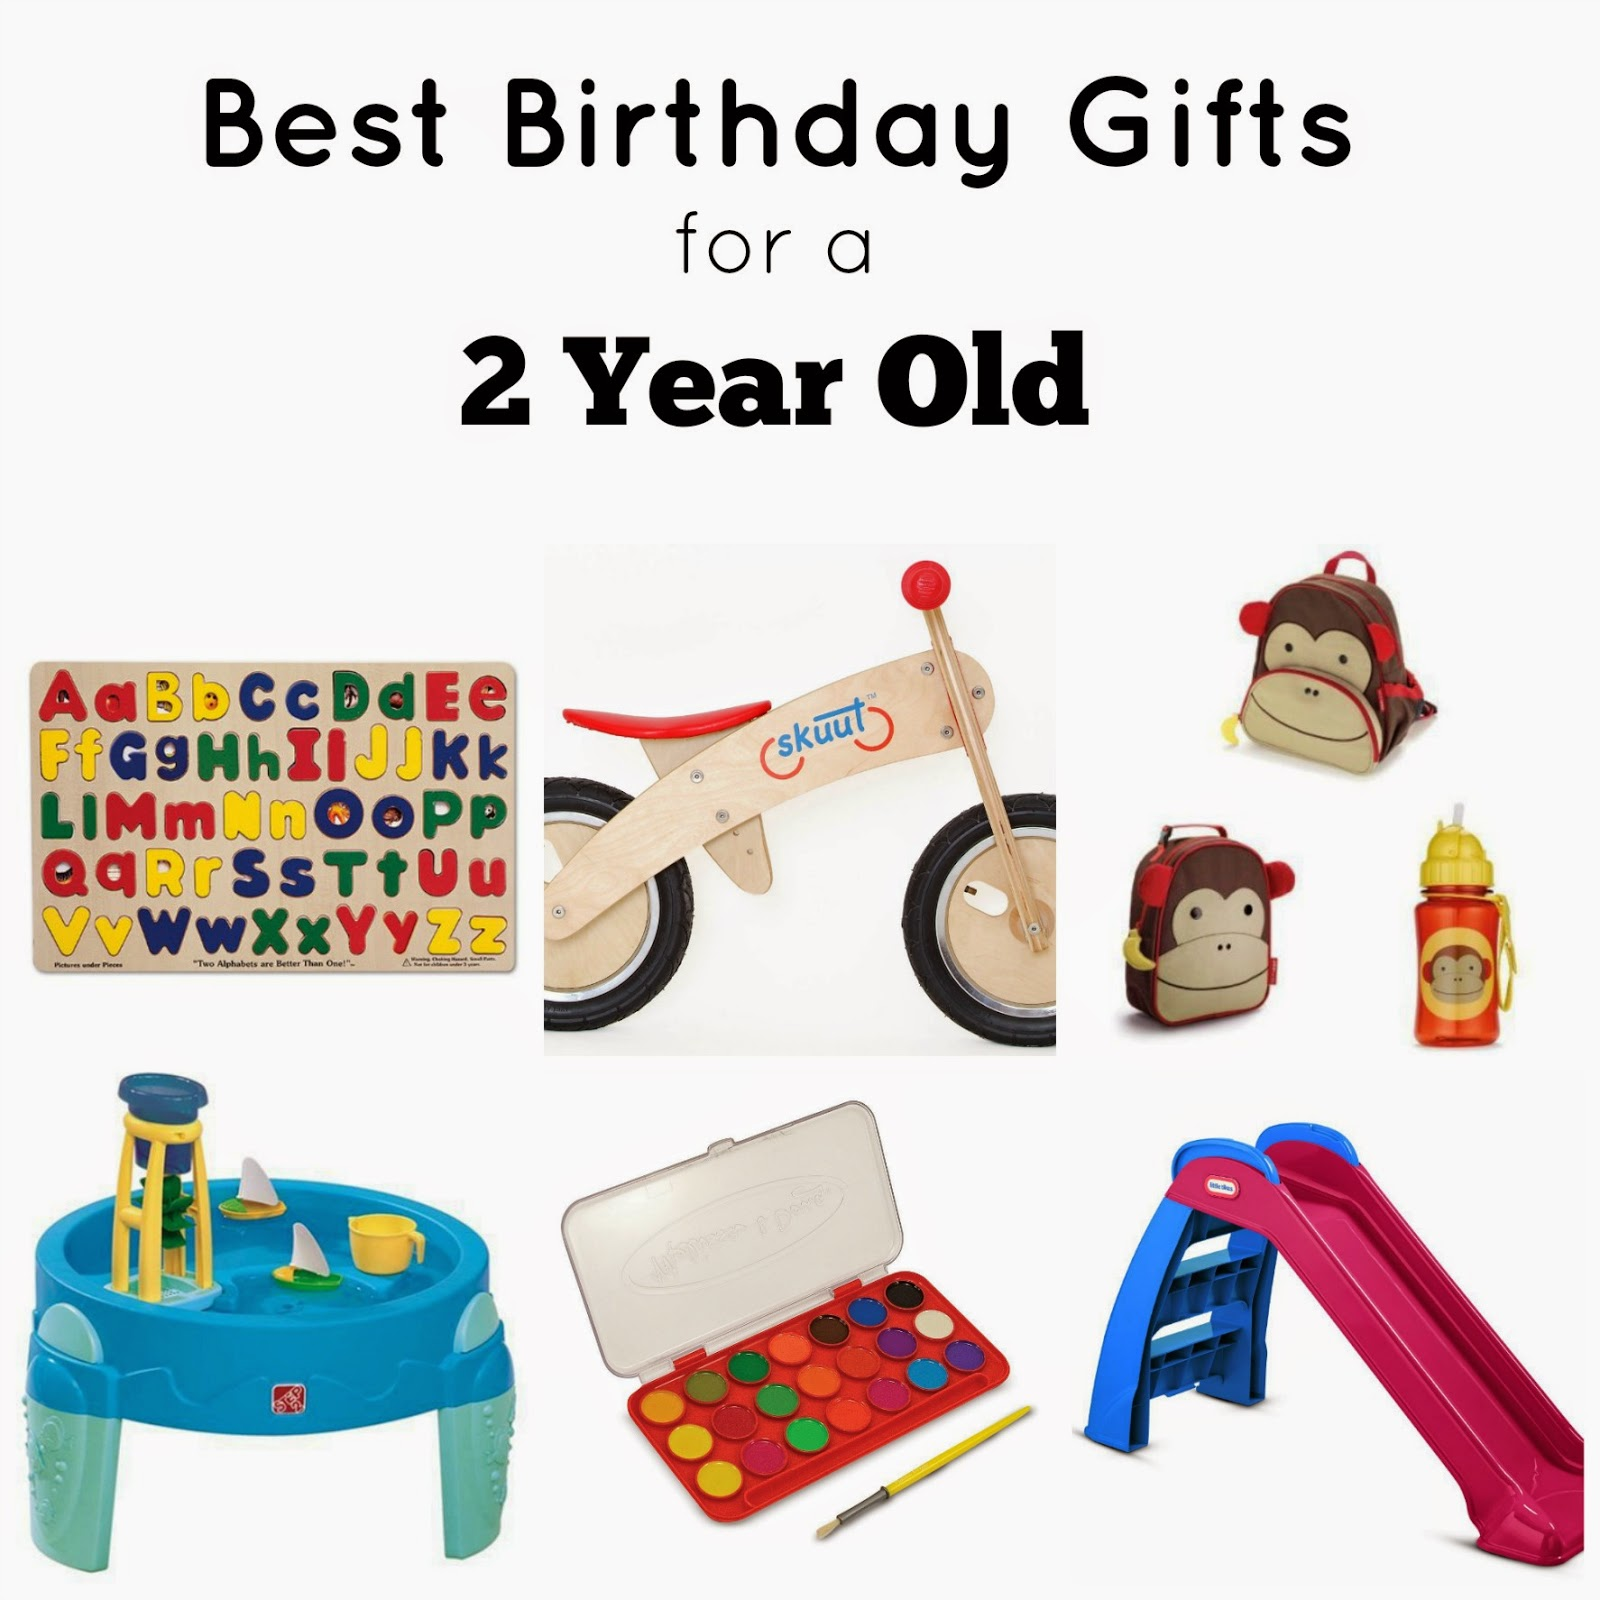 The Best Of Good toys for 2 Year Old Pictures